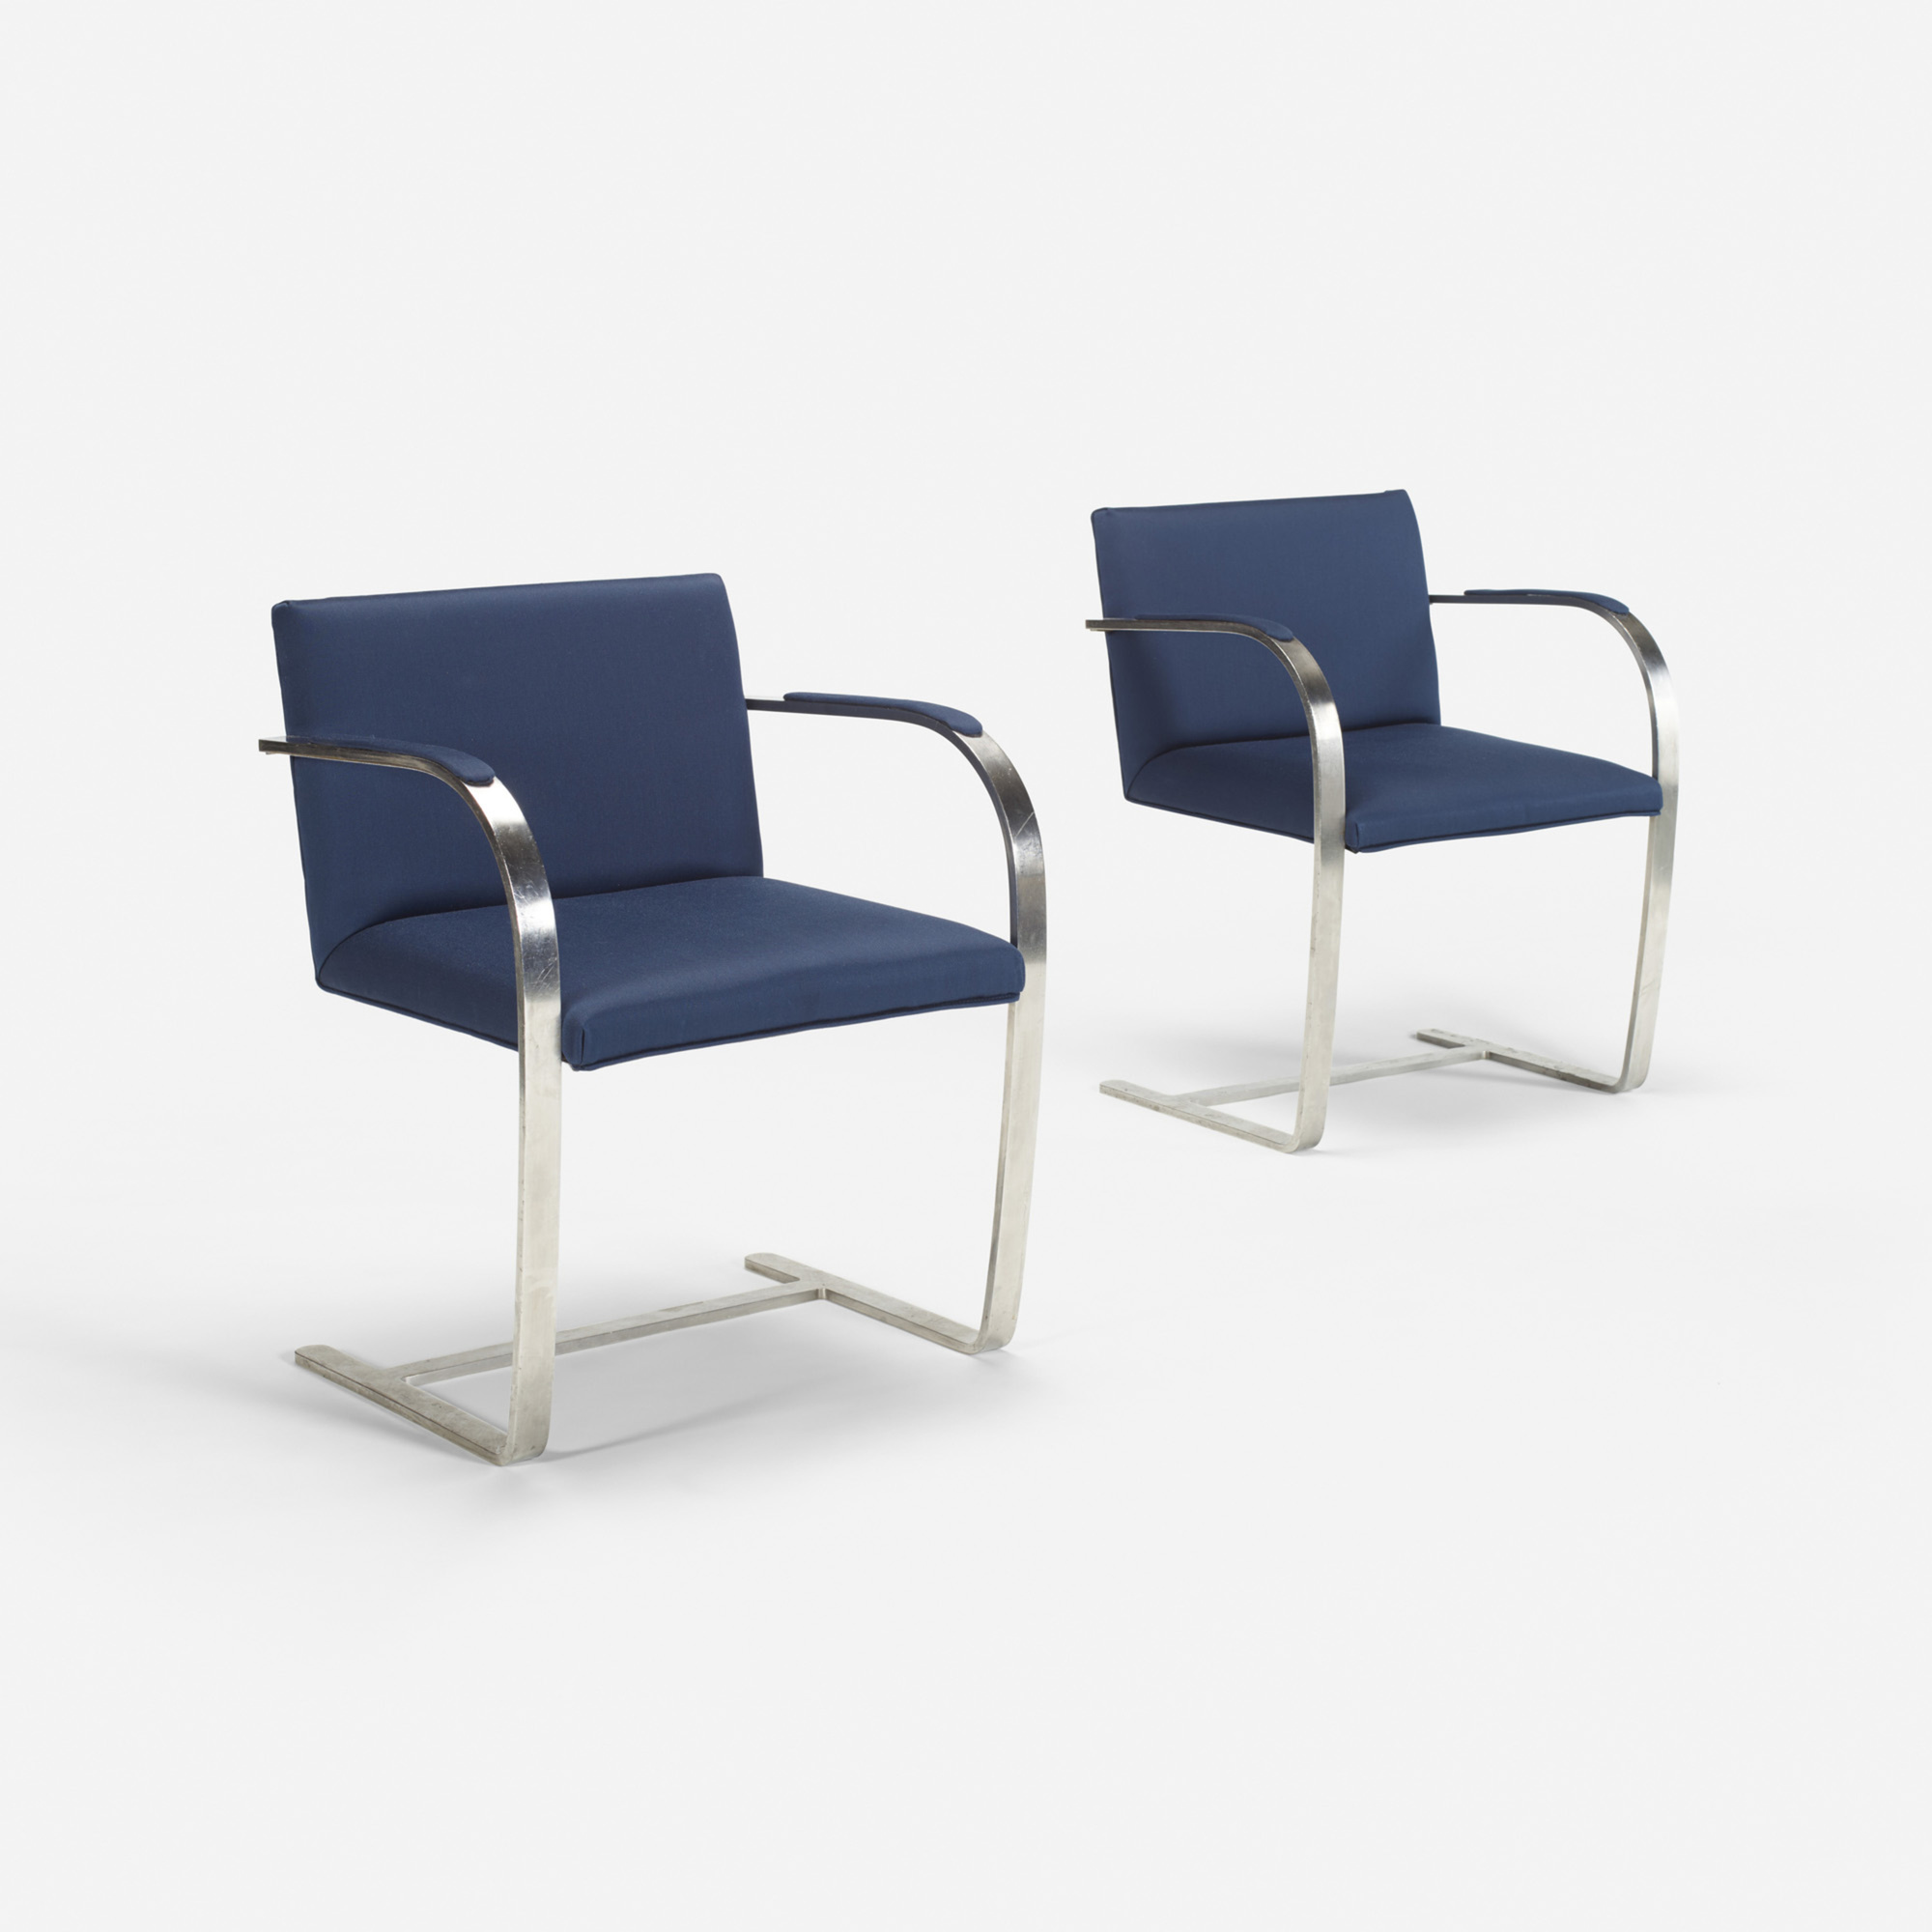 706: Ludwig Mies van der Rohe / Brno chairs from The Four Seasons, pair (1 of 1)